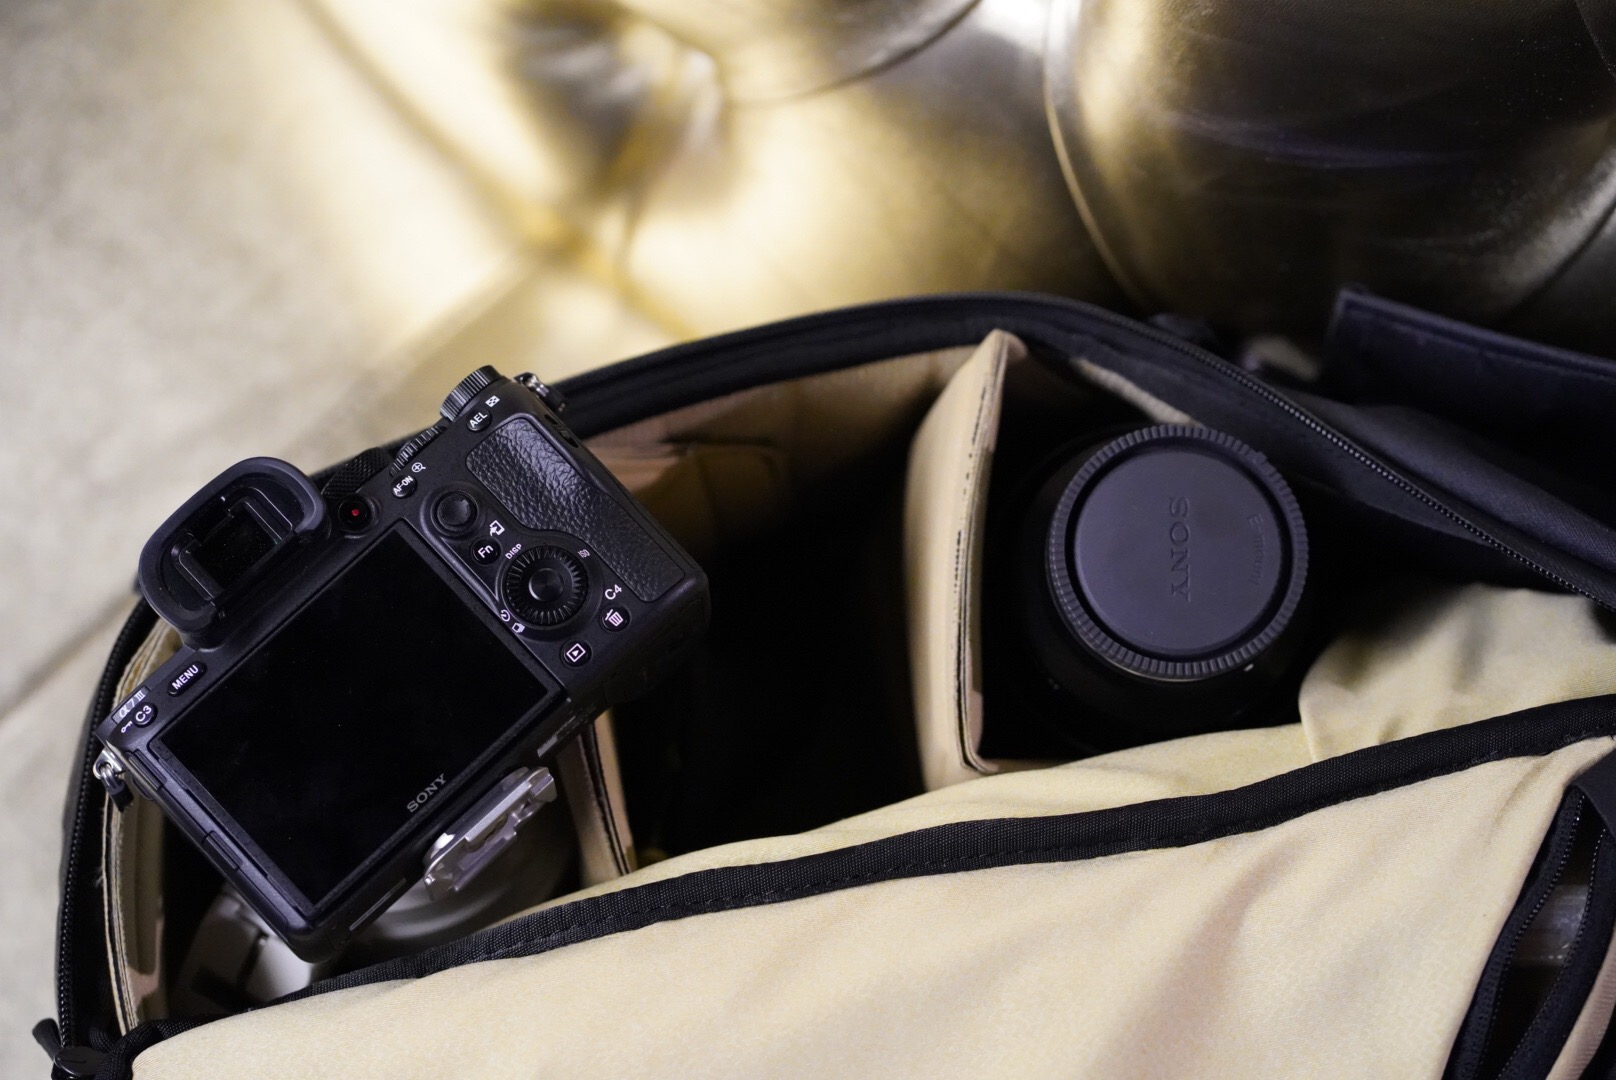 Body and lens in a backpack is light.